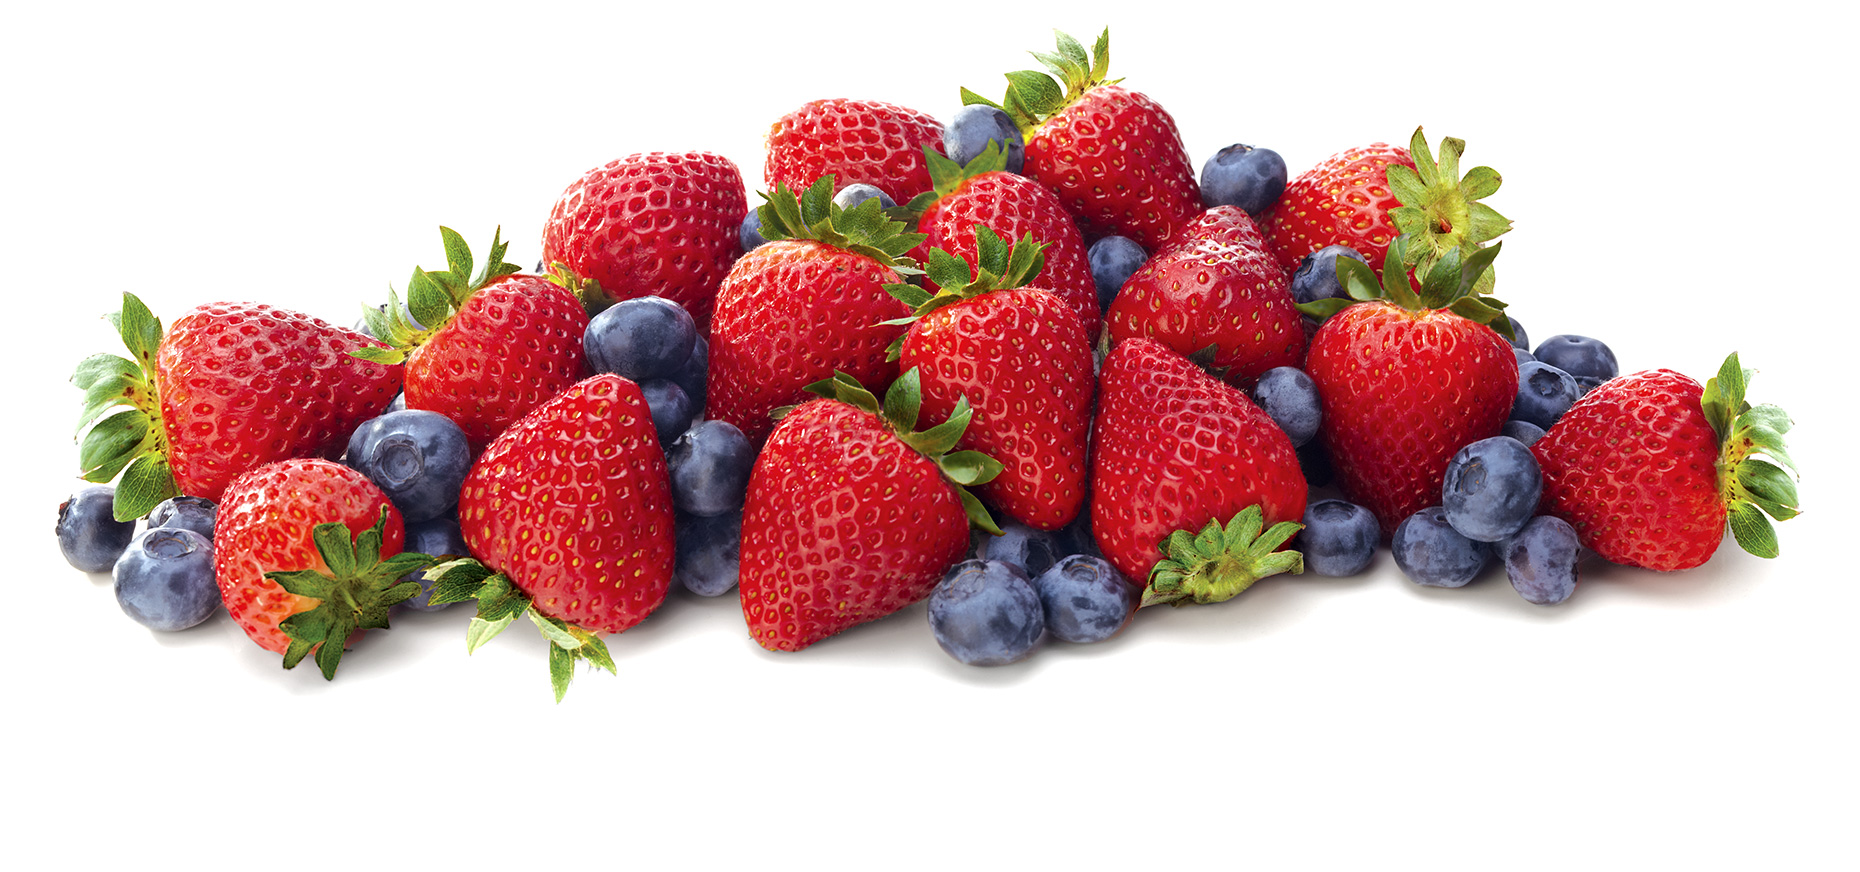 Strawberry-Blueberry-Beauty-Hero_000191-CMYK